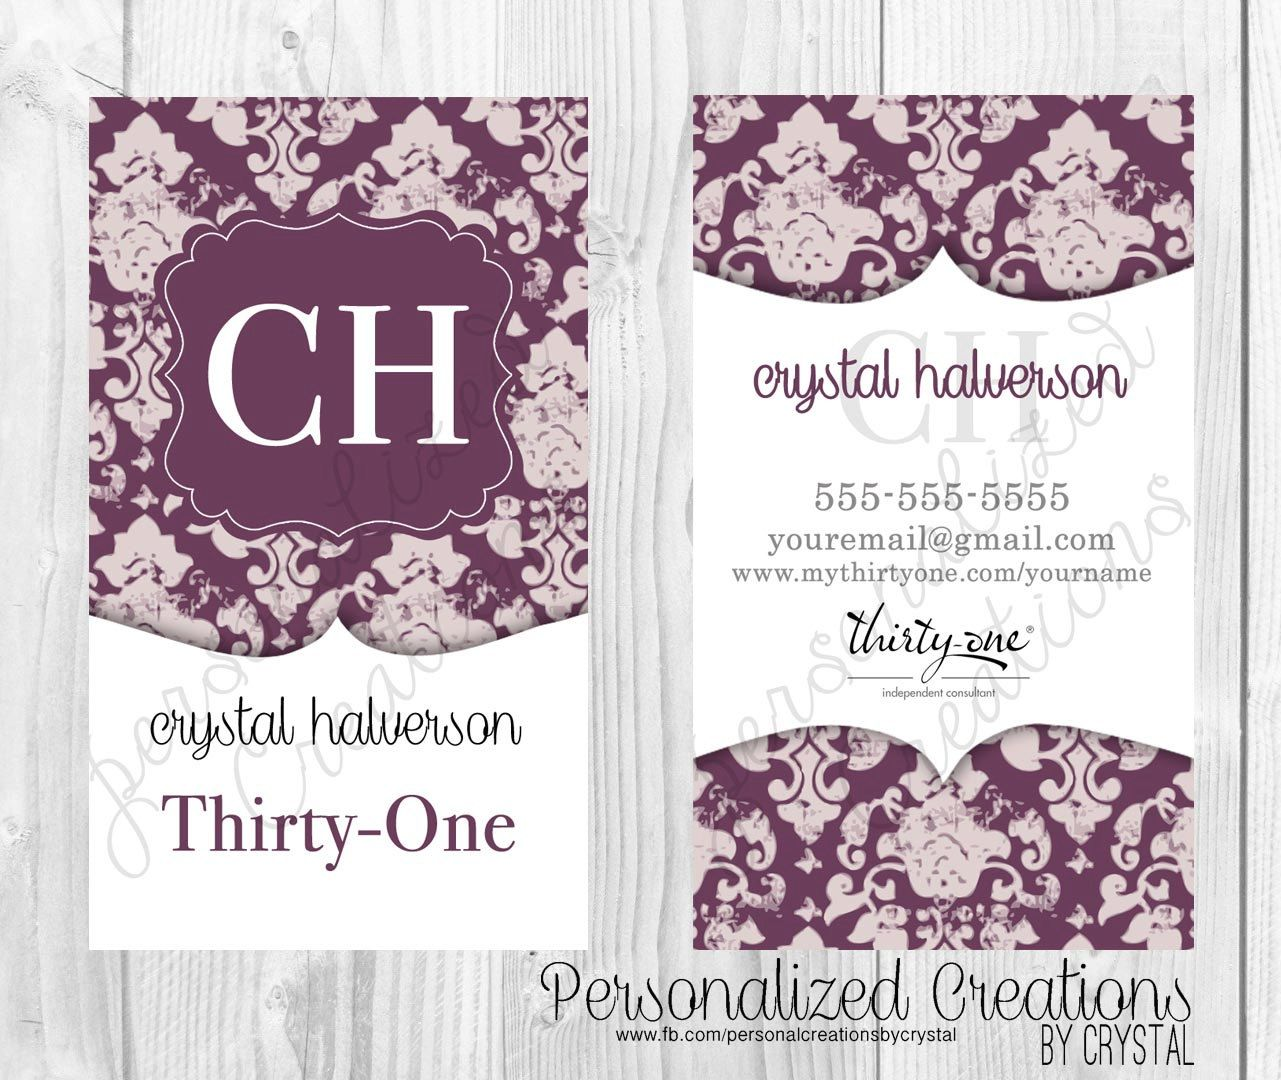 Personalized business cards made for thirty one gifts vintage personalized business cards made for thirty one gifts vintage damask new fall 2015 magicingreecefo Image collections